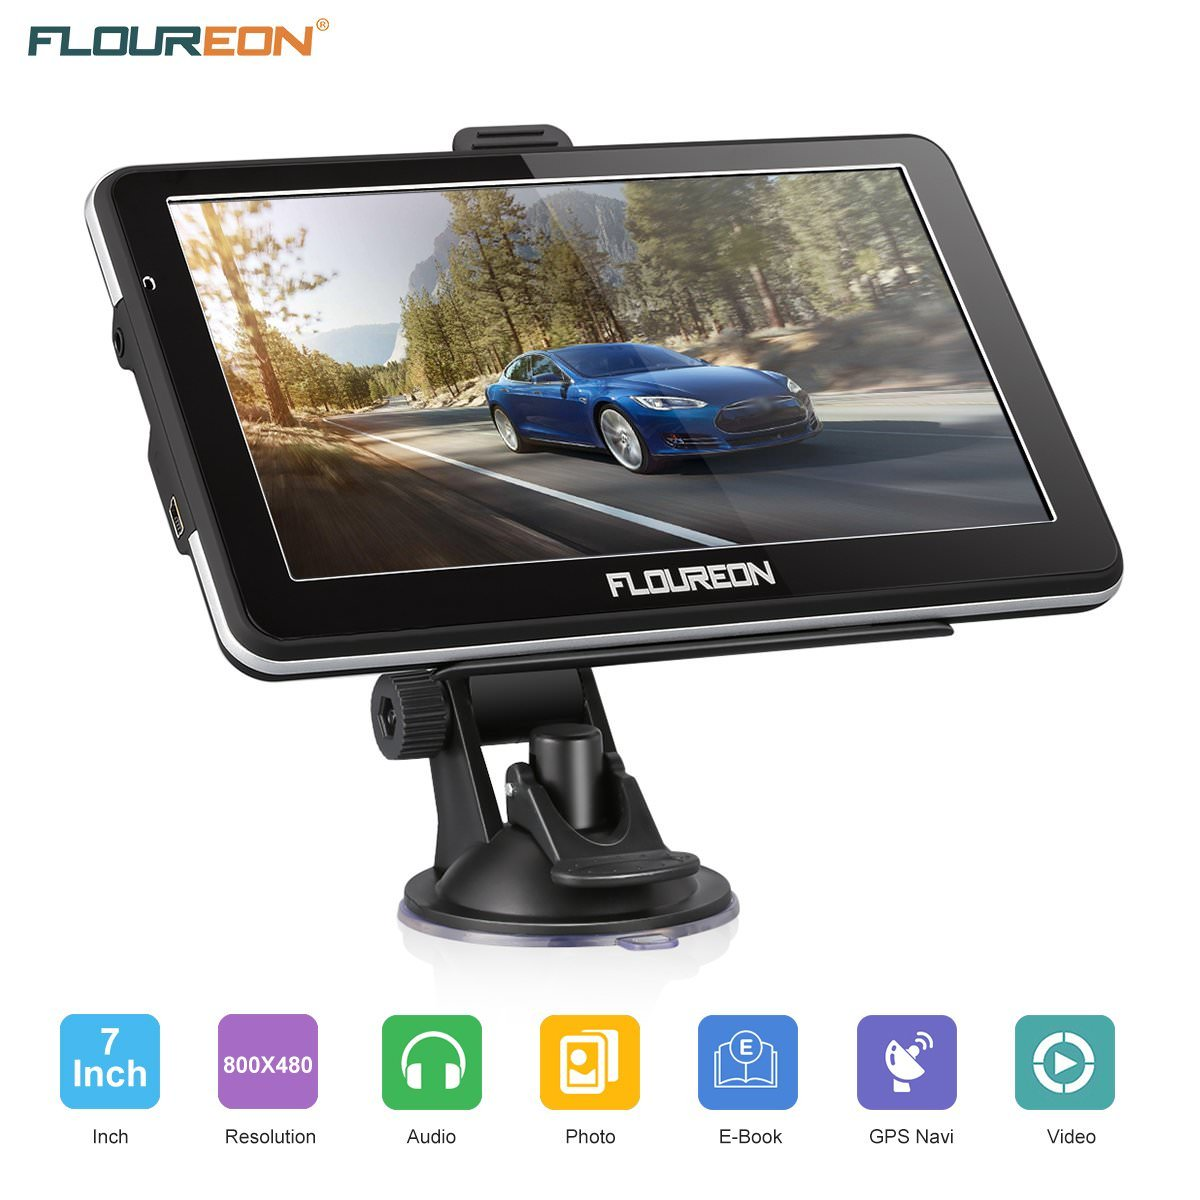 Floureon Portable 7 inch 8GB Capacitive Touchscreen Car GPS Navigation System sat nav with Lifetime Maps